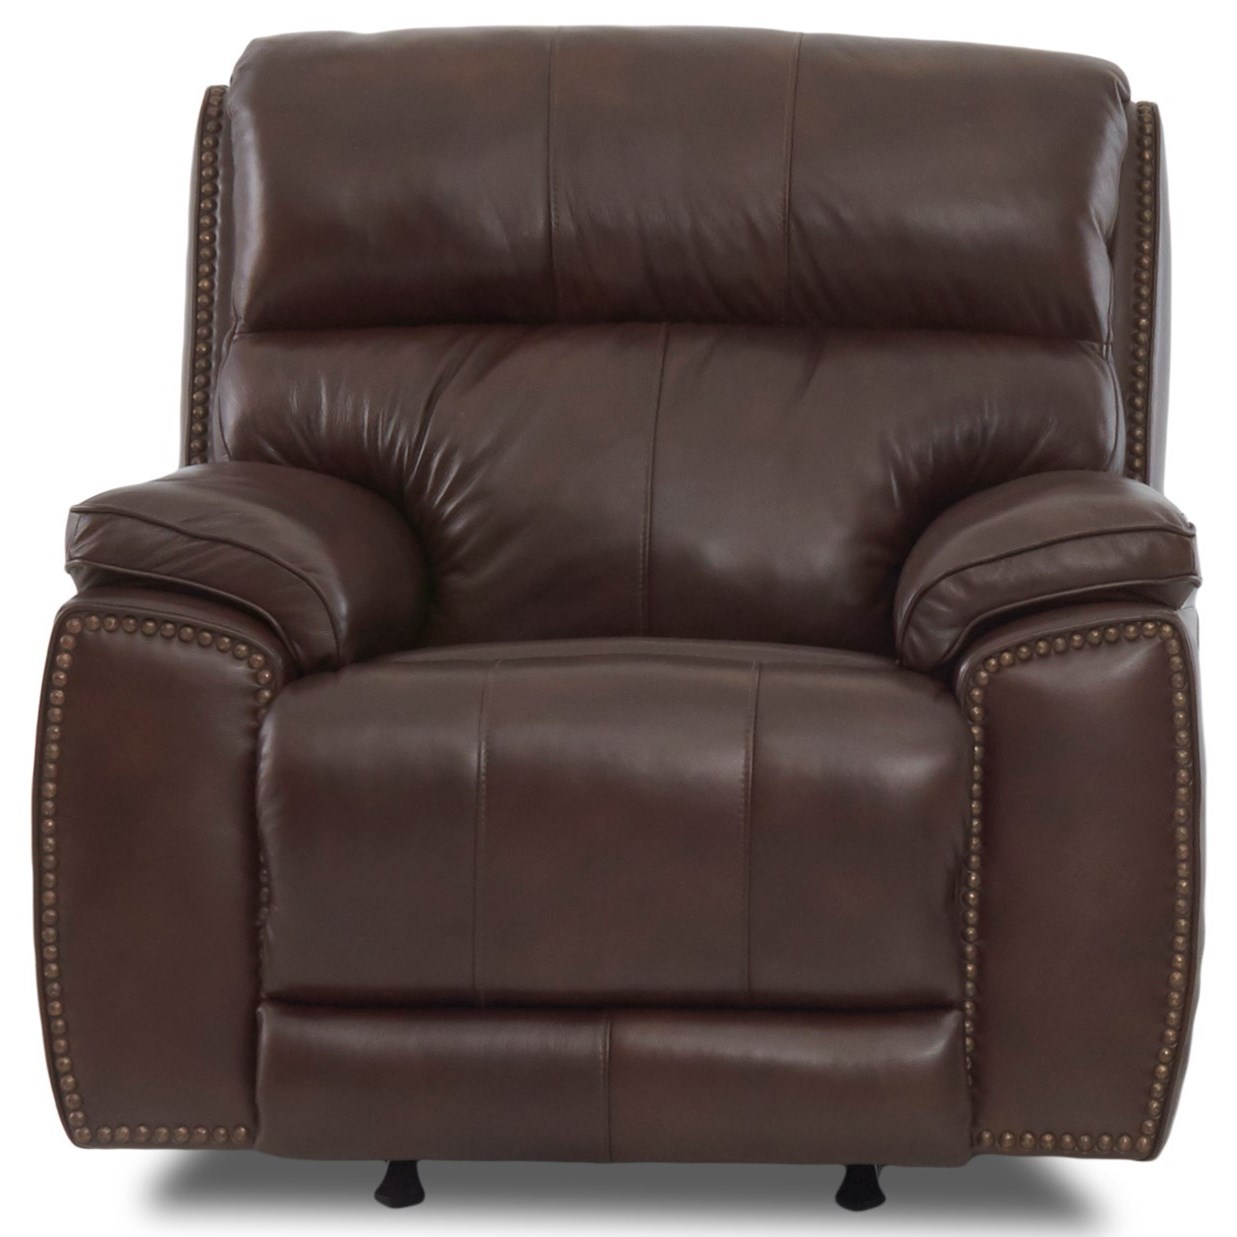 Reclining Chair with Nailheads